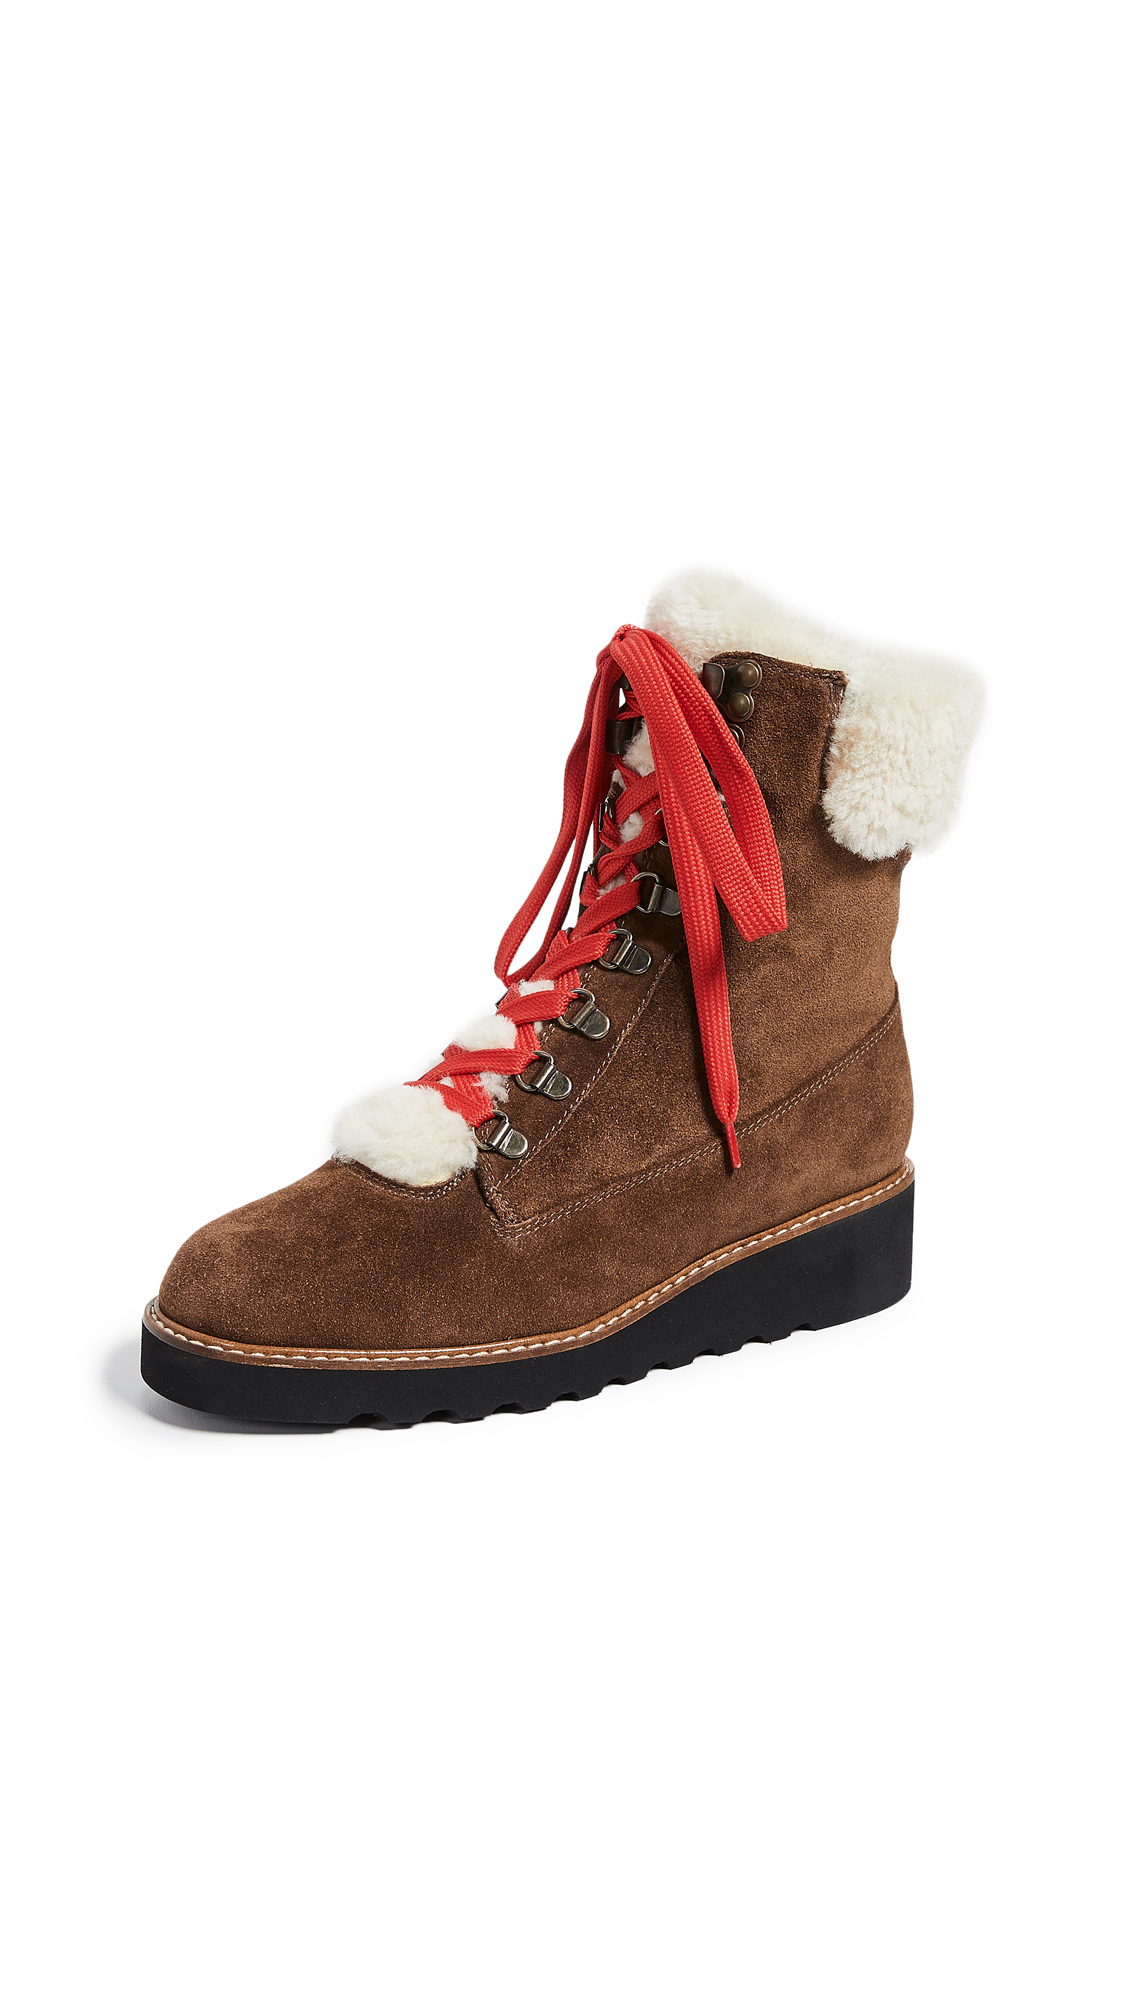 Veronica Beard Vale Hiker Shearling Boots - Coconut/Natural